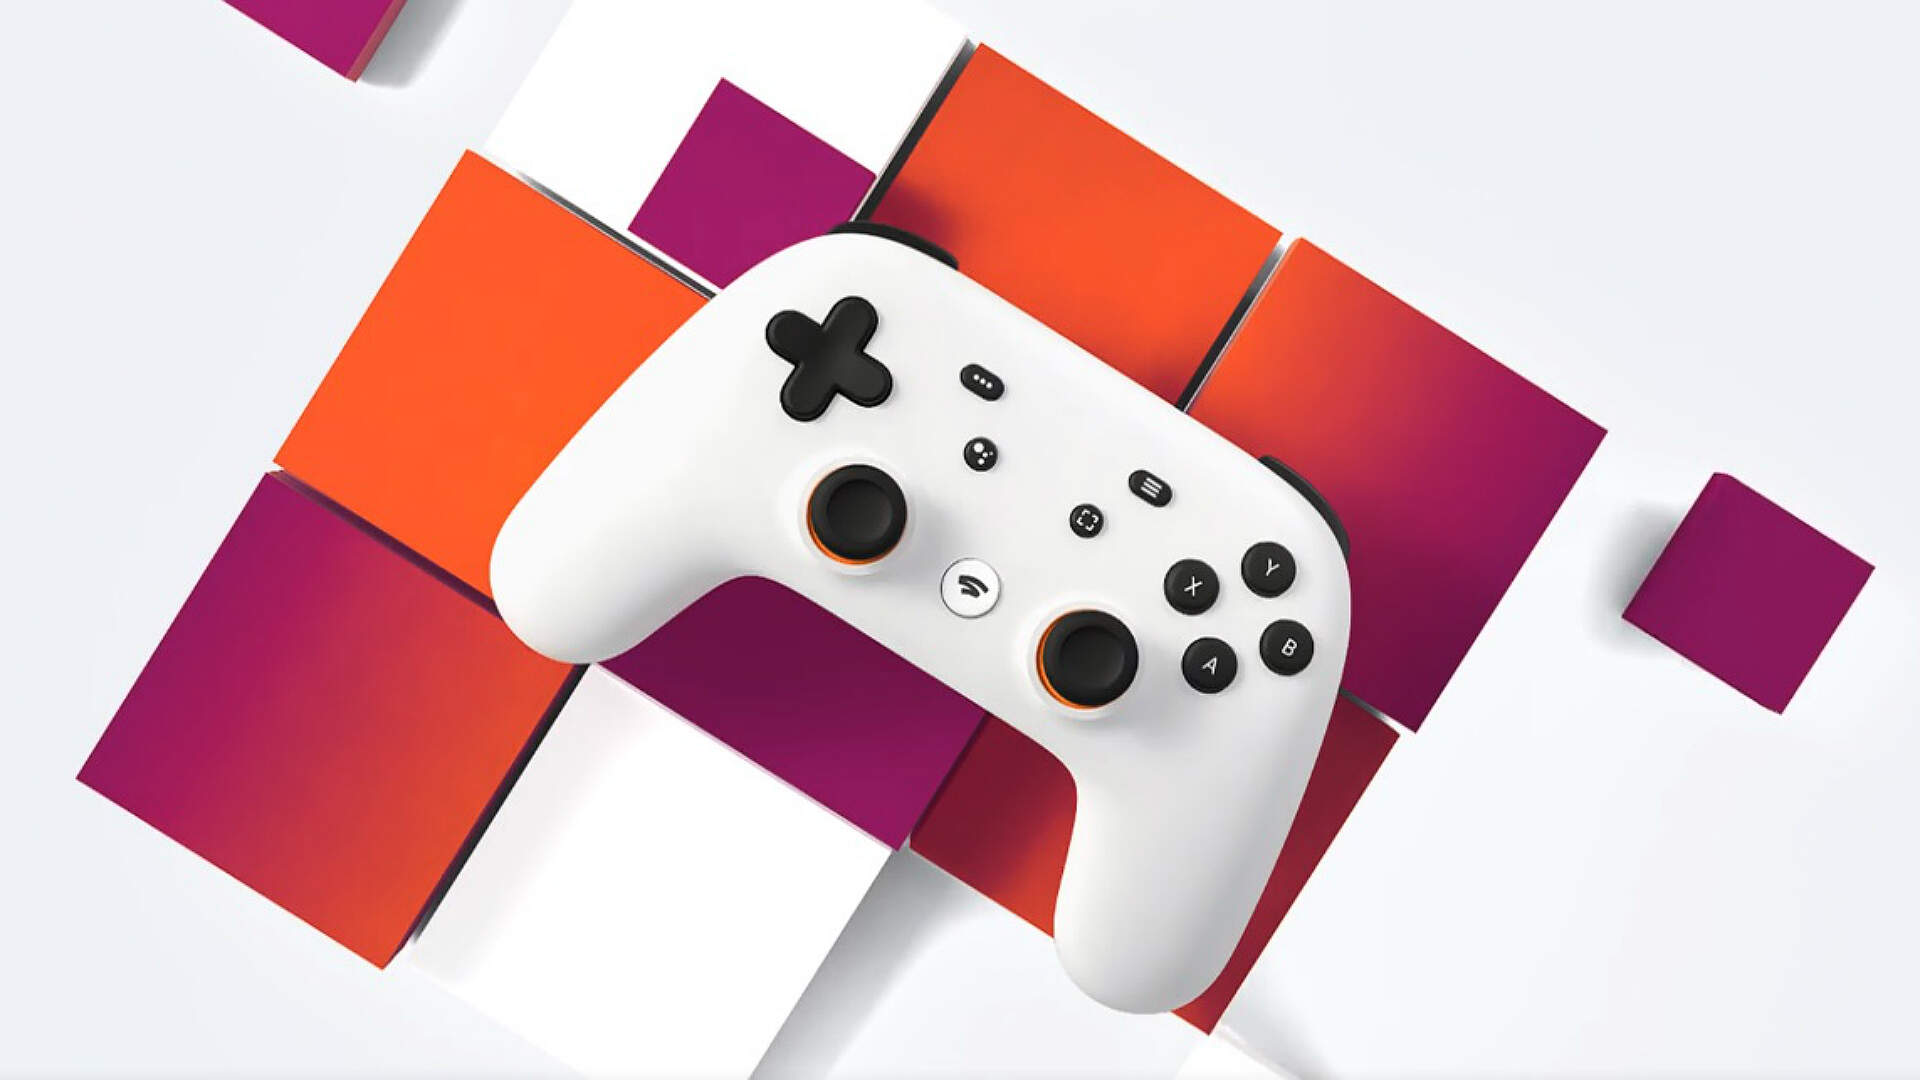 Google Stadia Release and Pricing Leaks, Will Offer Premium 4K Subscription and Individual Purchases For Games